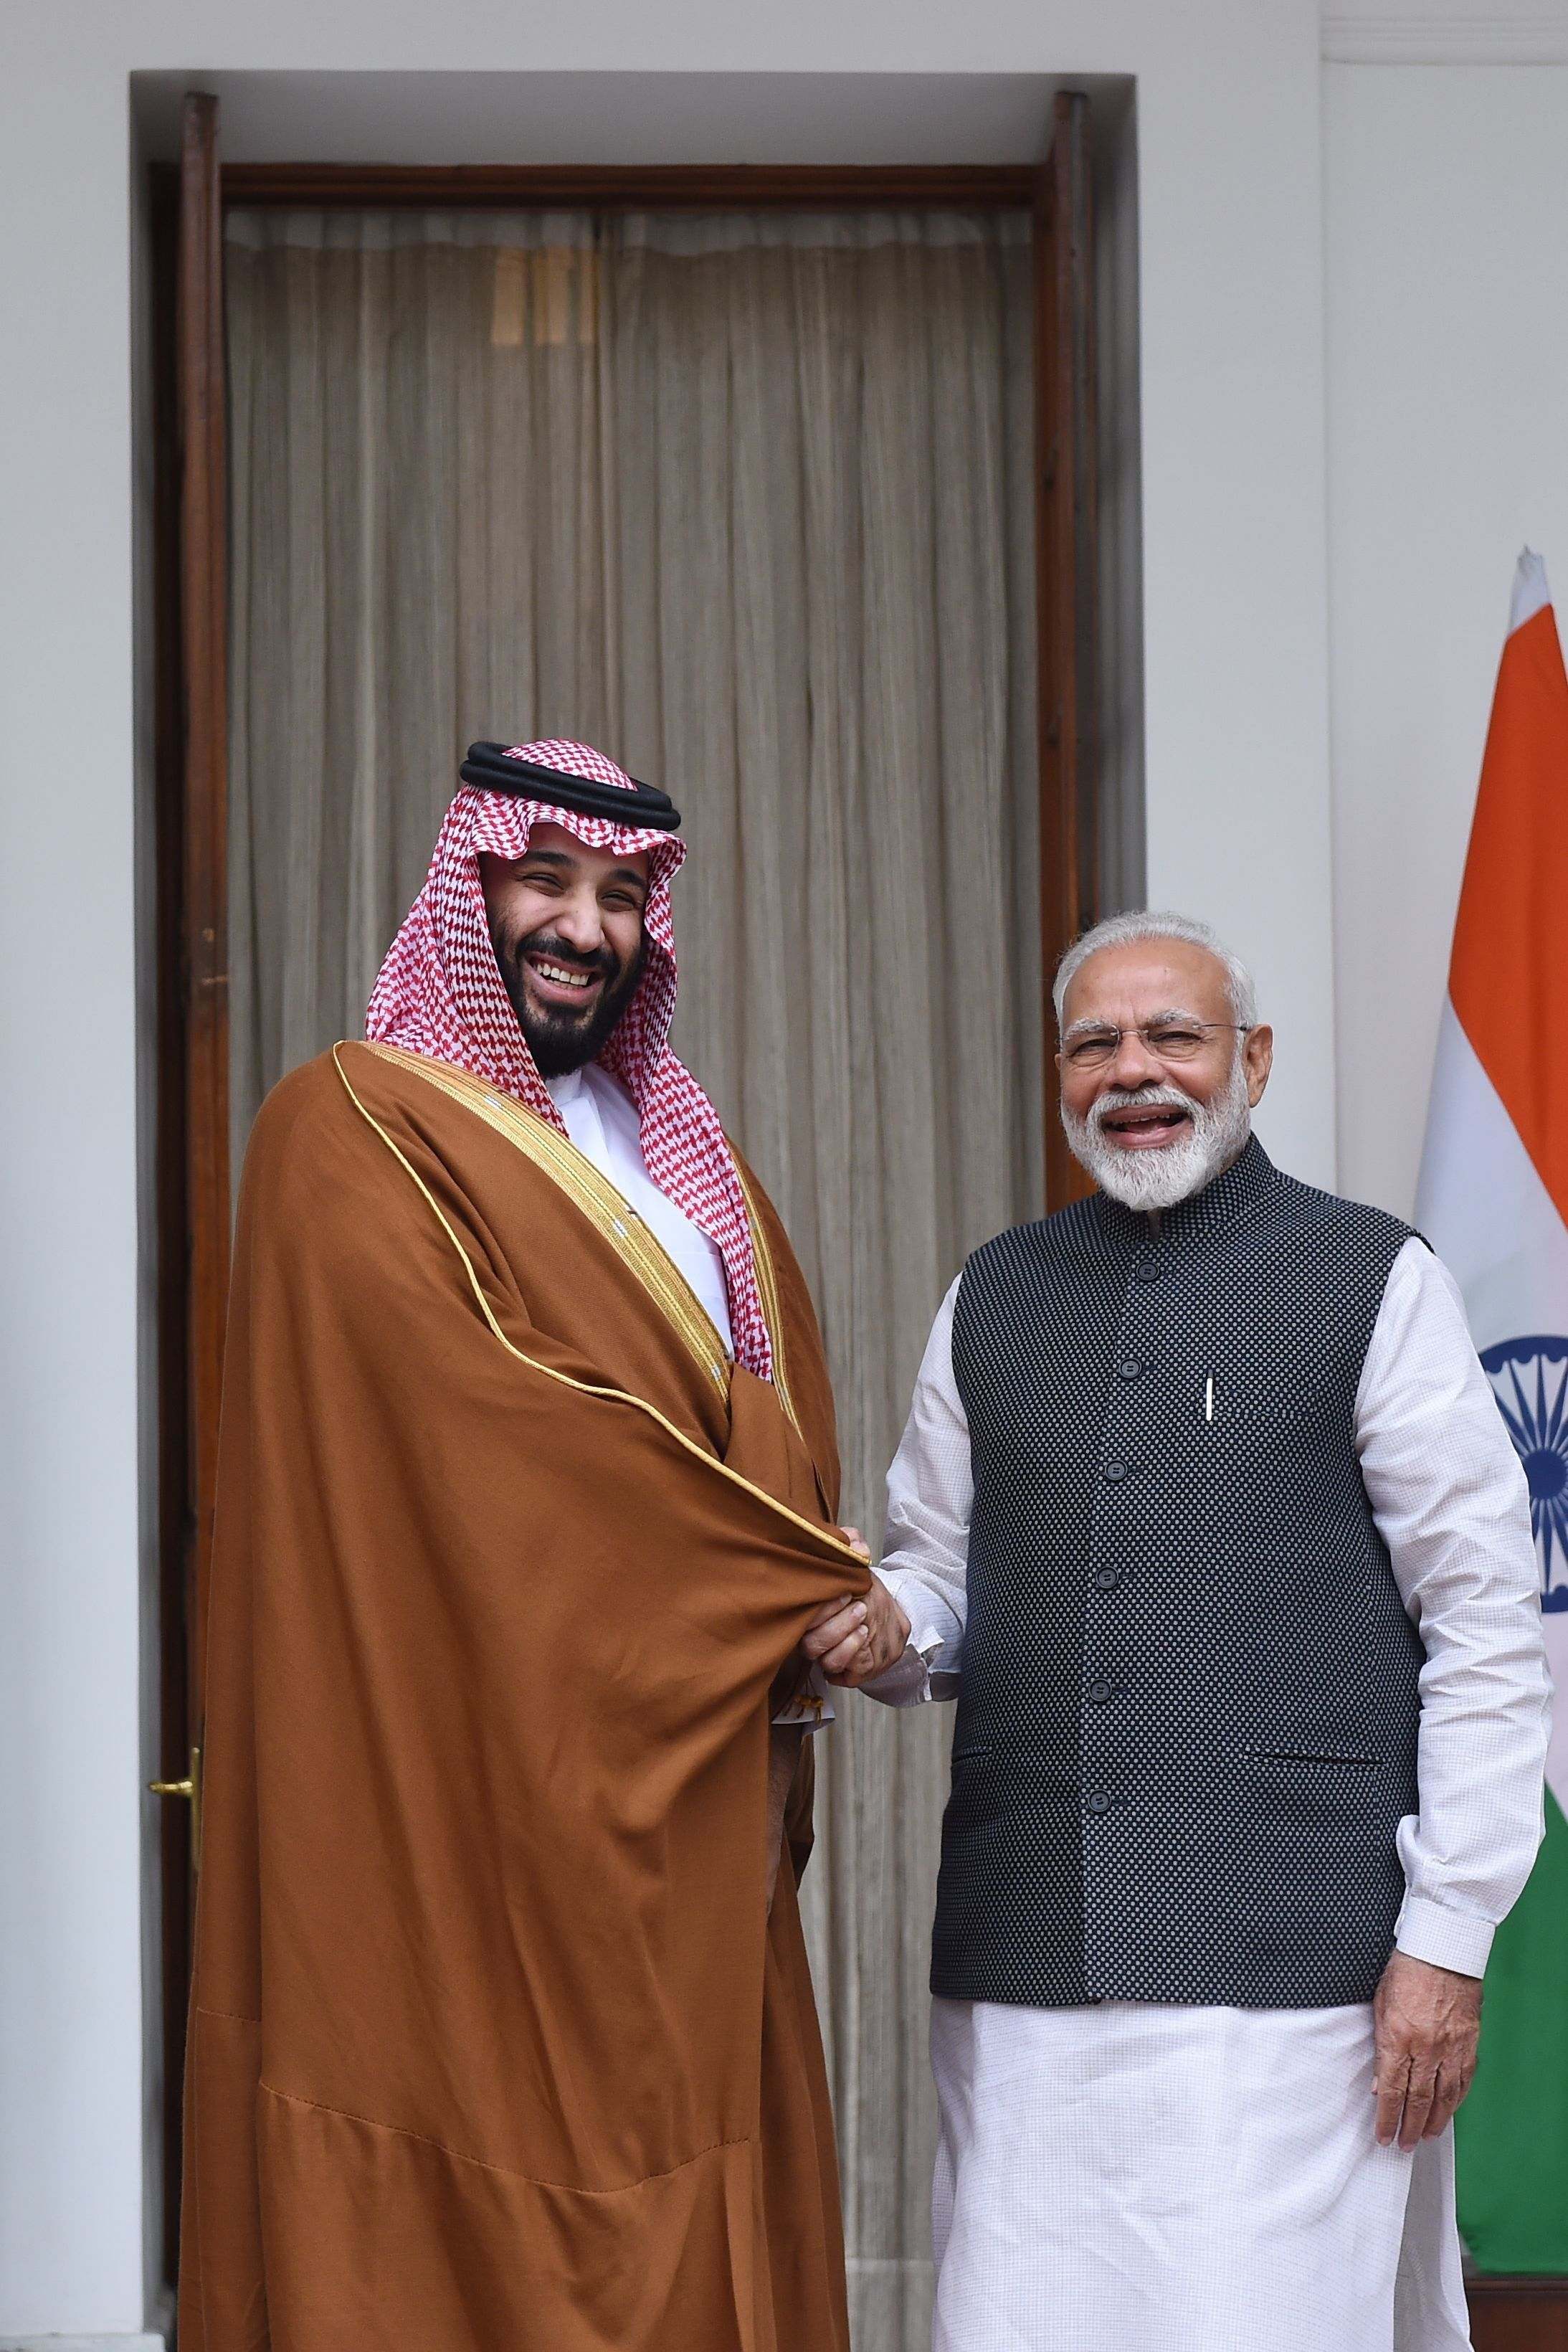 Terrorism A Common Concern With India, Says Saudi Crown Prince In Joint Statement With